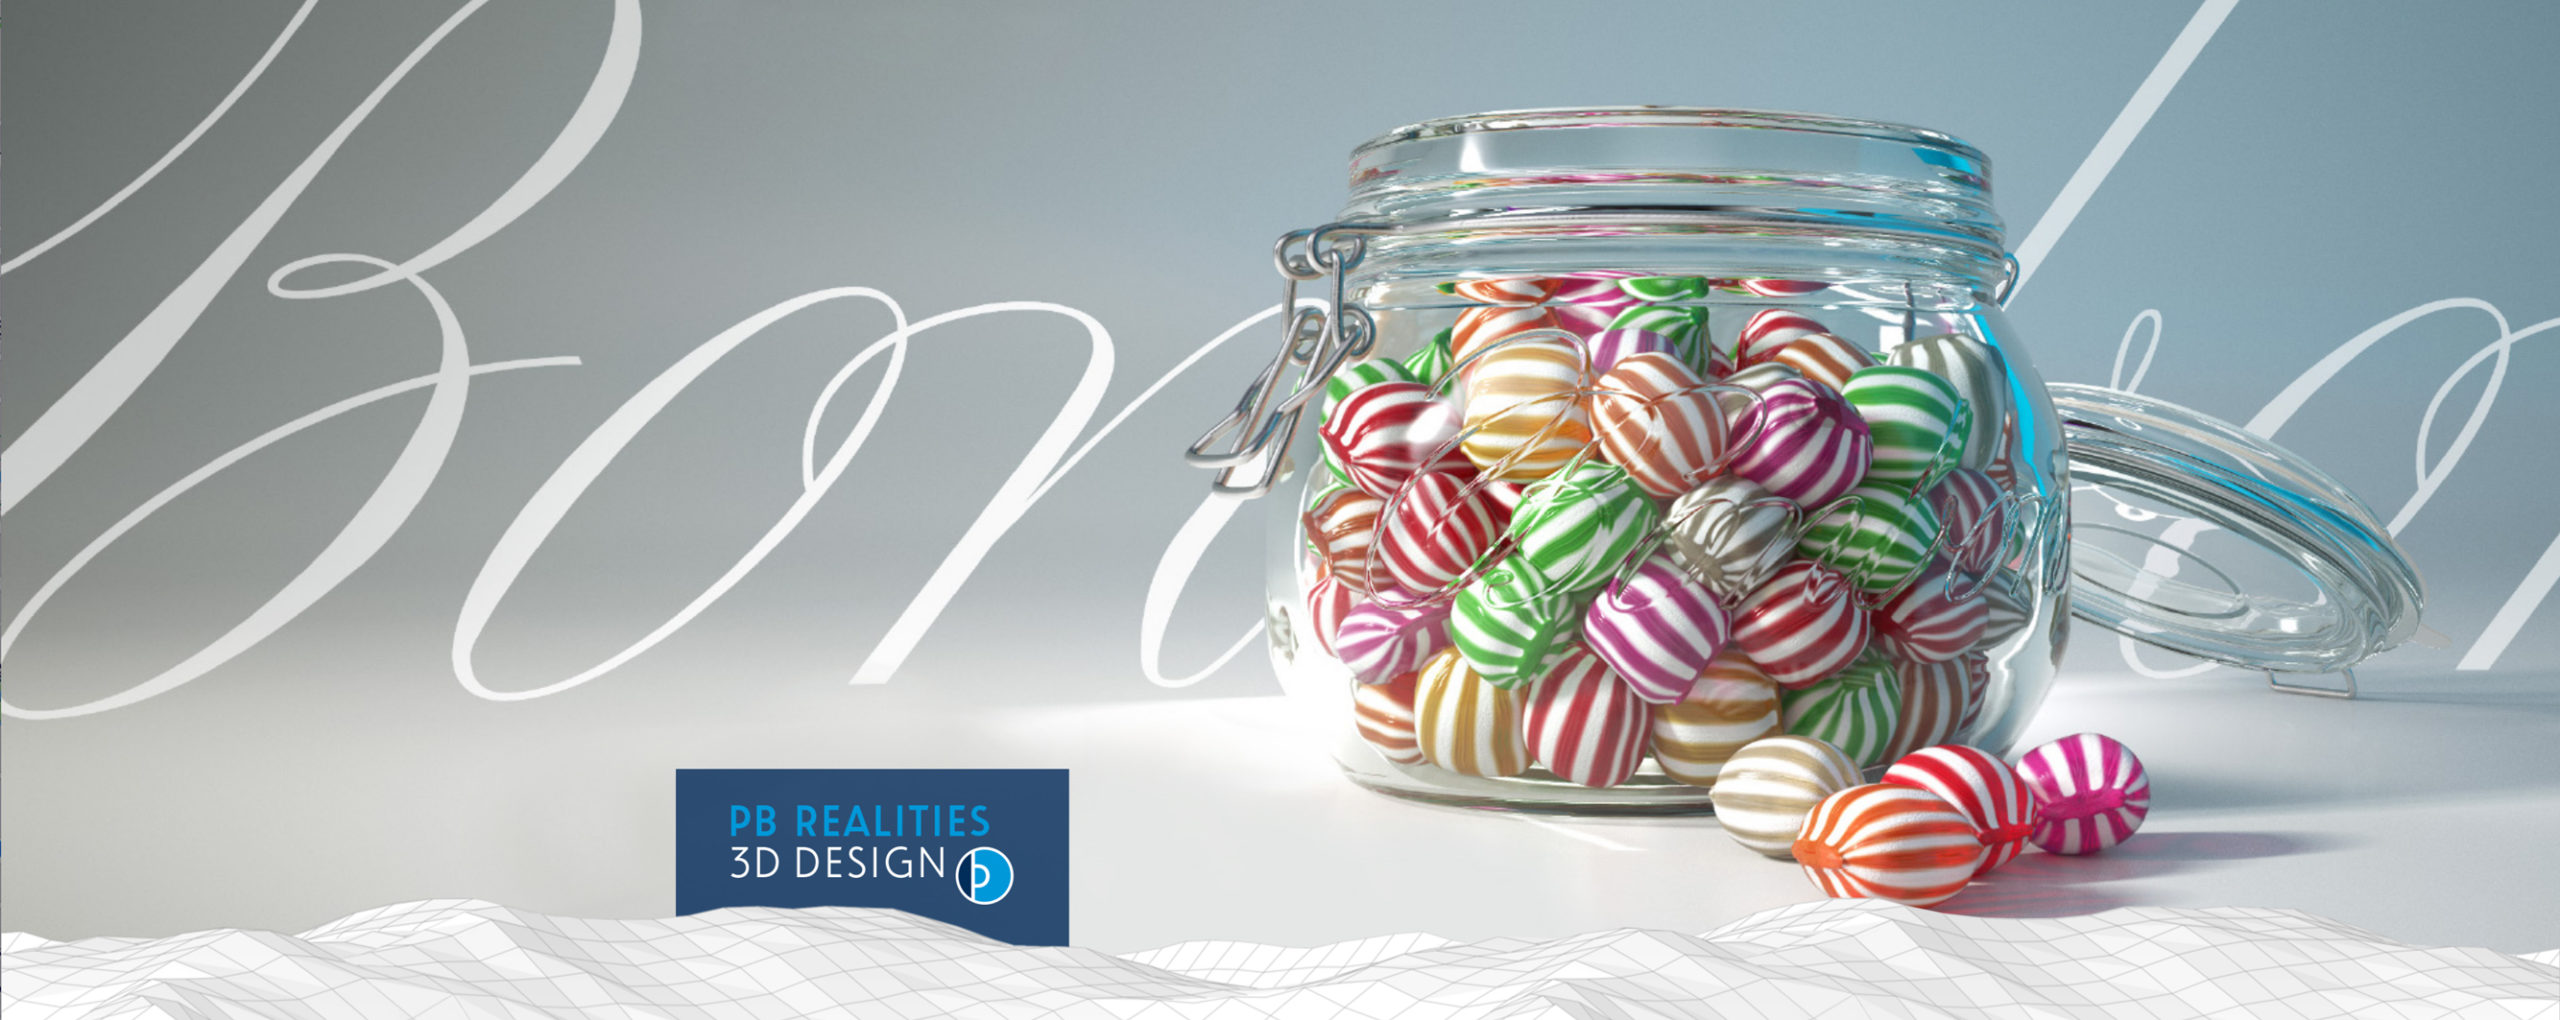 3D Design of a glass filled with sweets